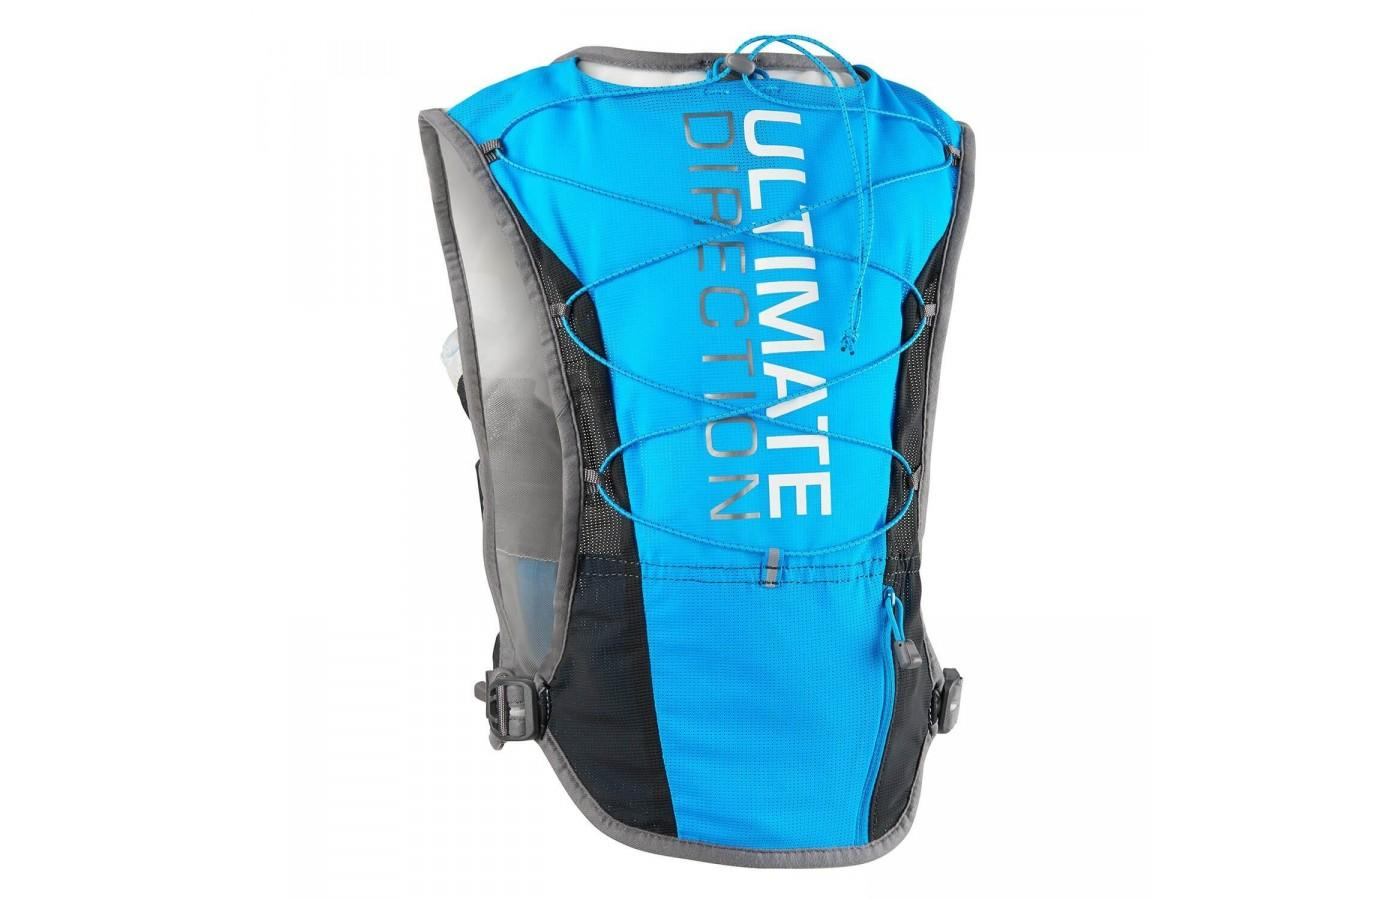 the Ultimate Direction SJ Ultra Vest 3.0 is a great hydration vest for medium to long-distance runners